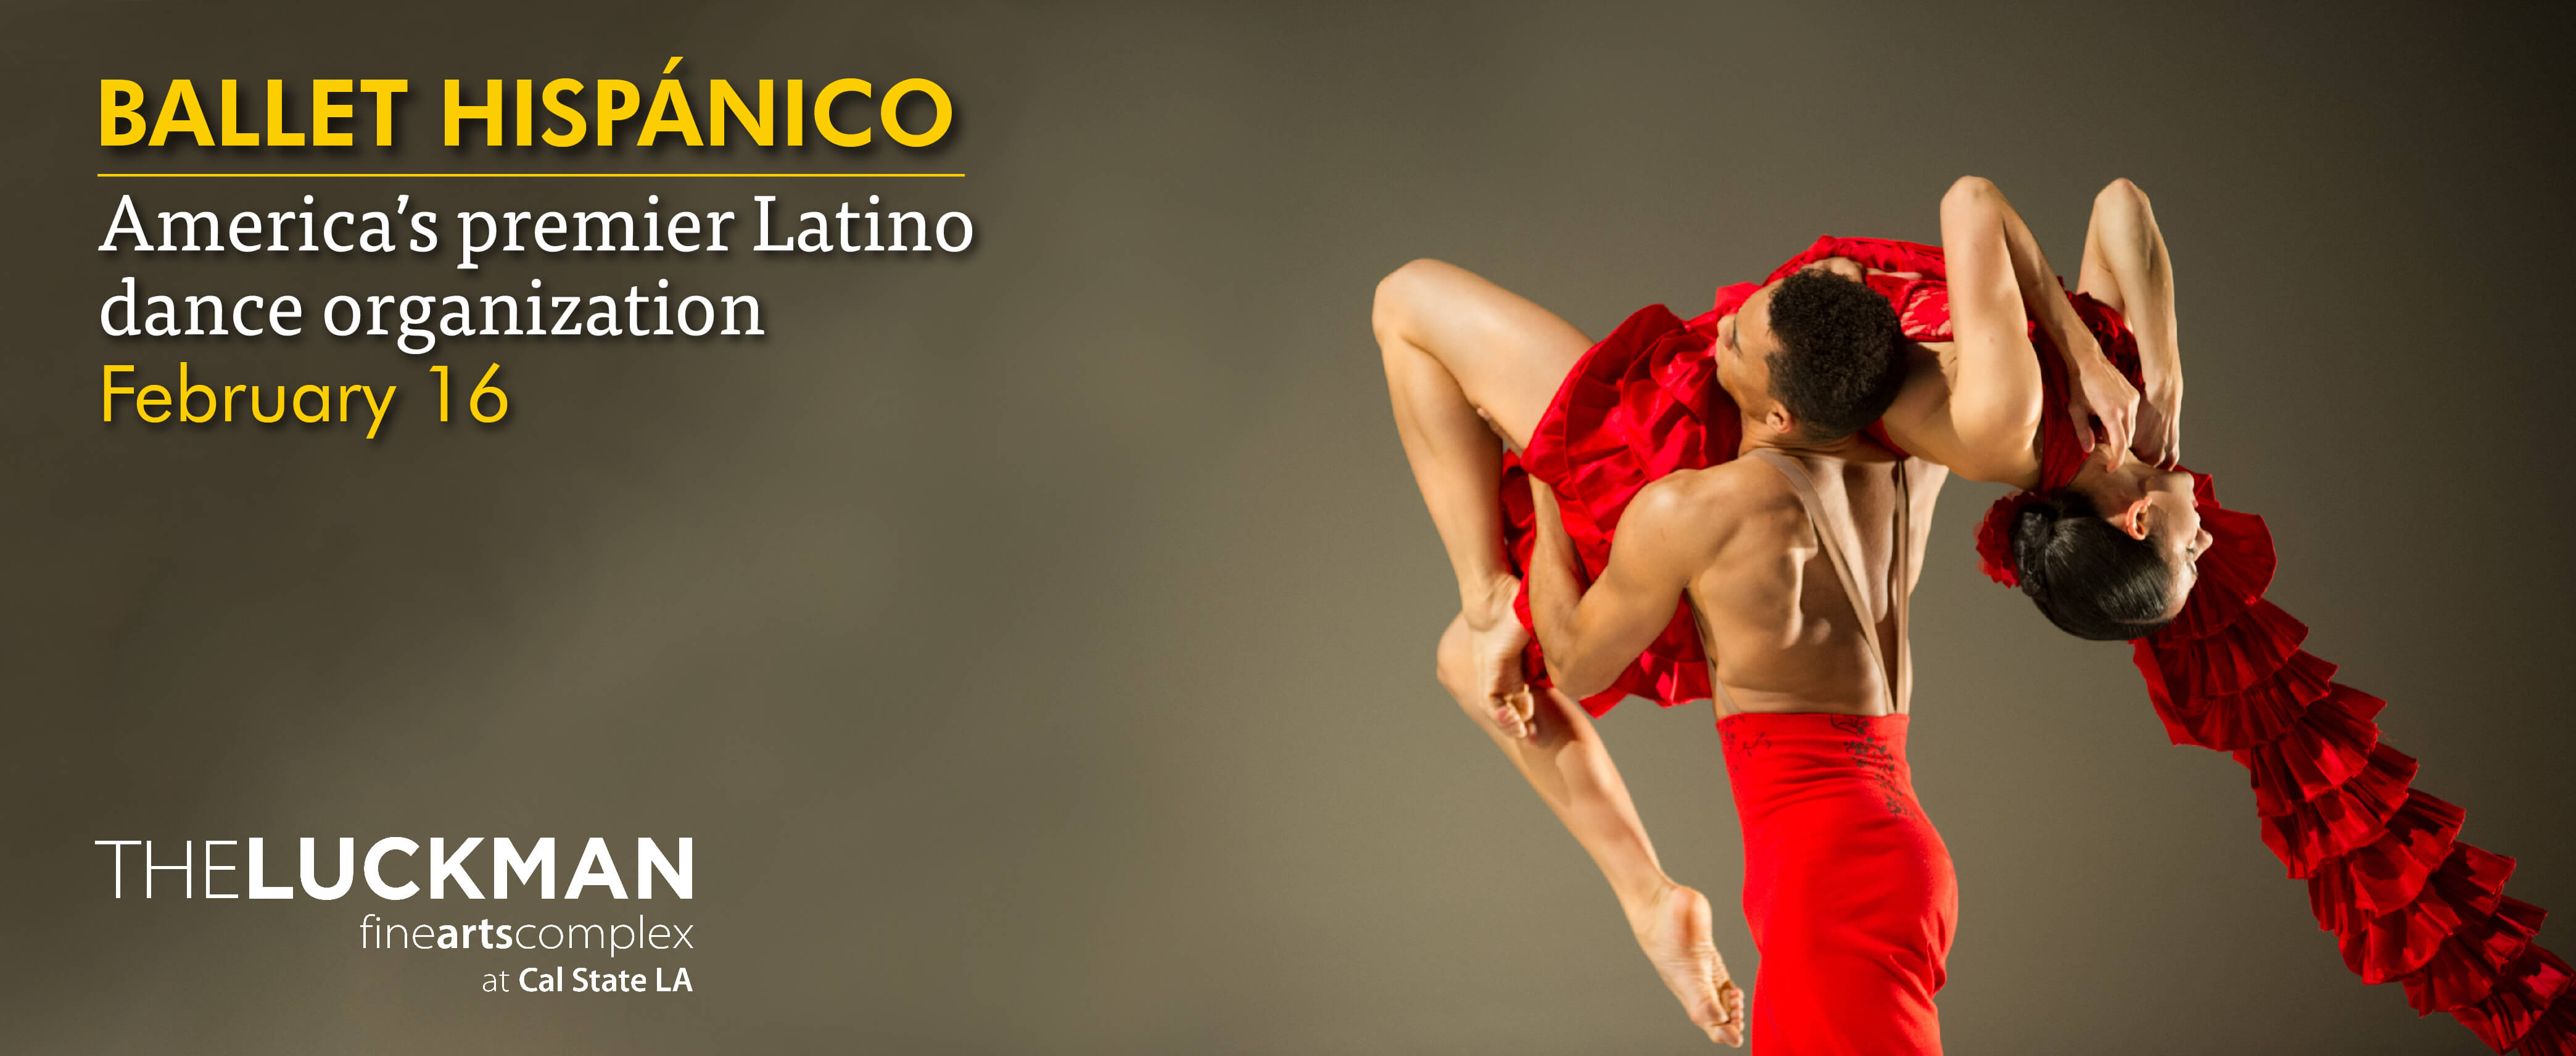 Ballet hispanico Luckman Fine Arts